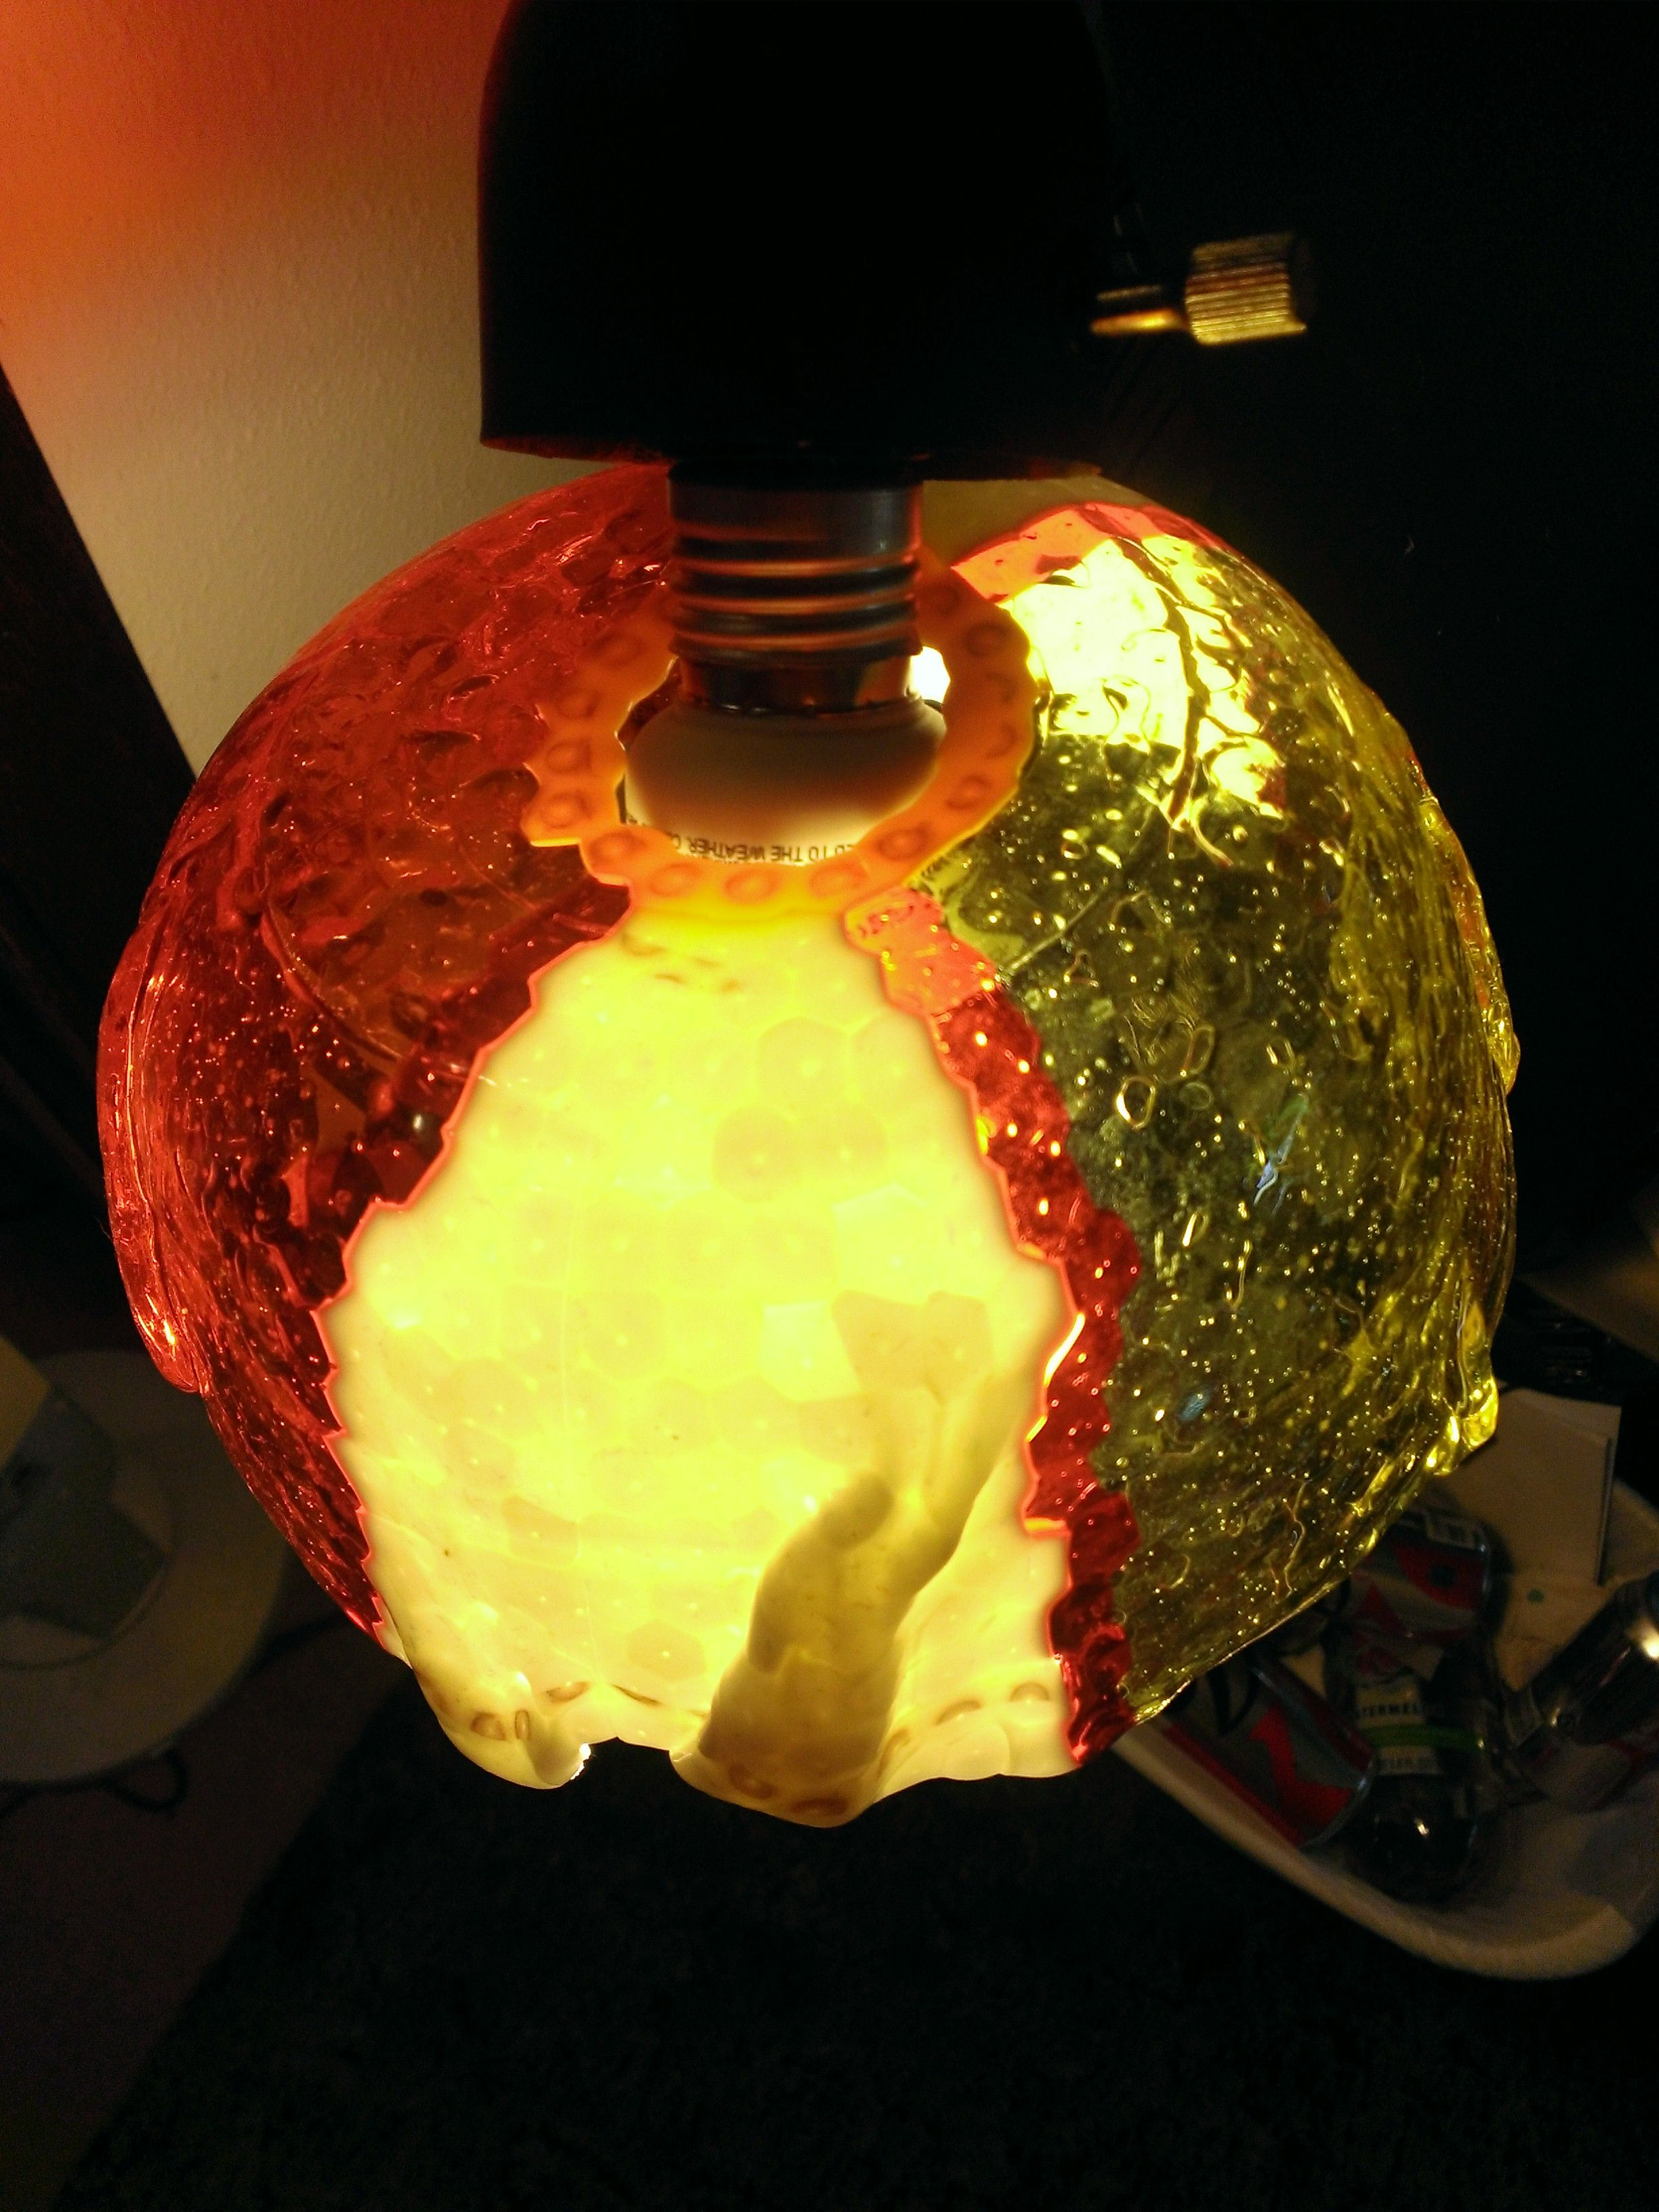 Melted Beads Melted Beads Lamp Shade Beaded Lampshade Beaded Lamps Melting Beads